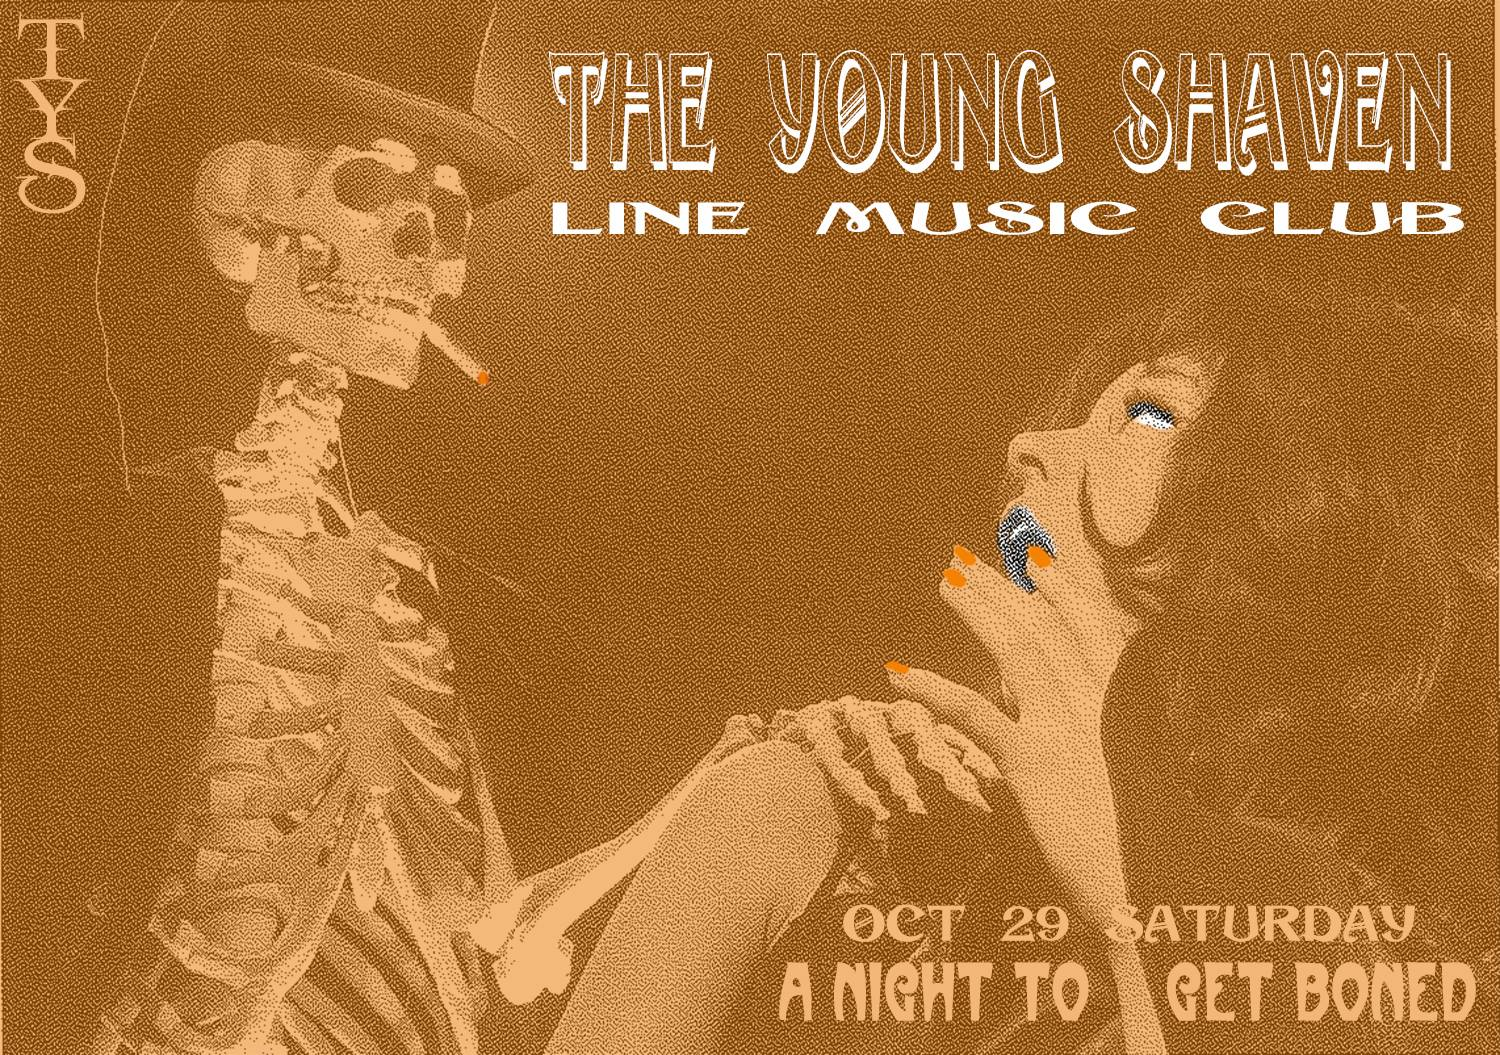 The Young Shaven Line Music Club Poster